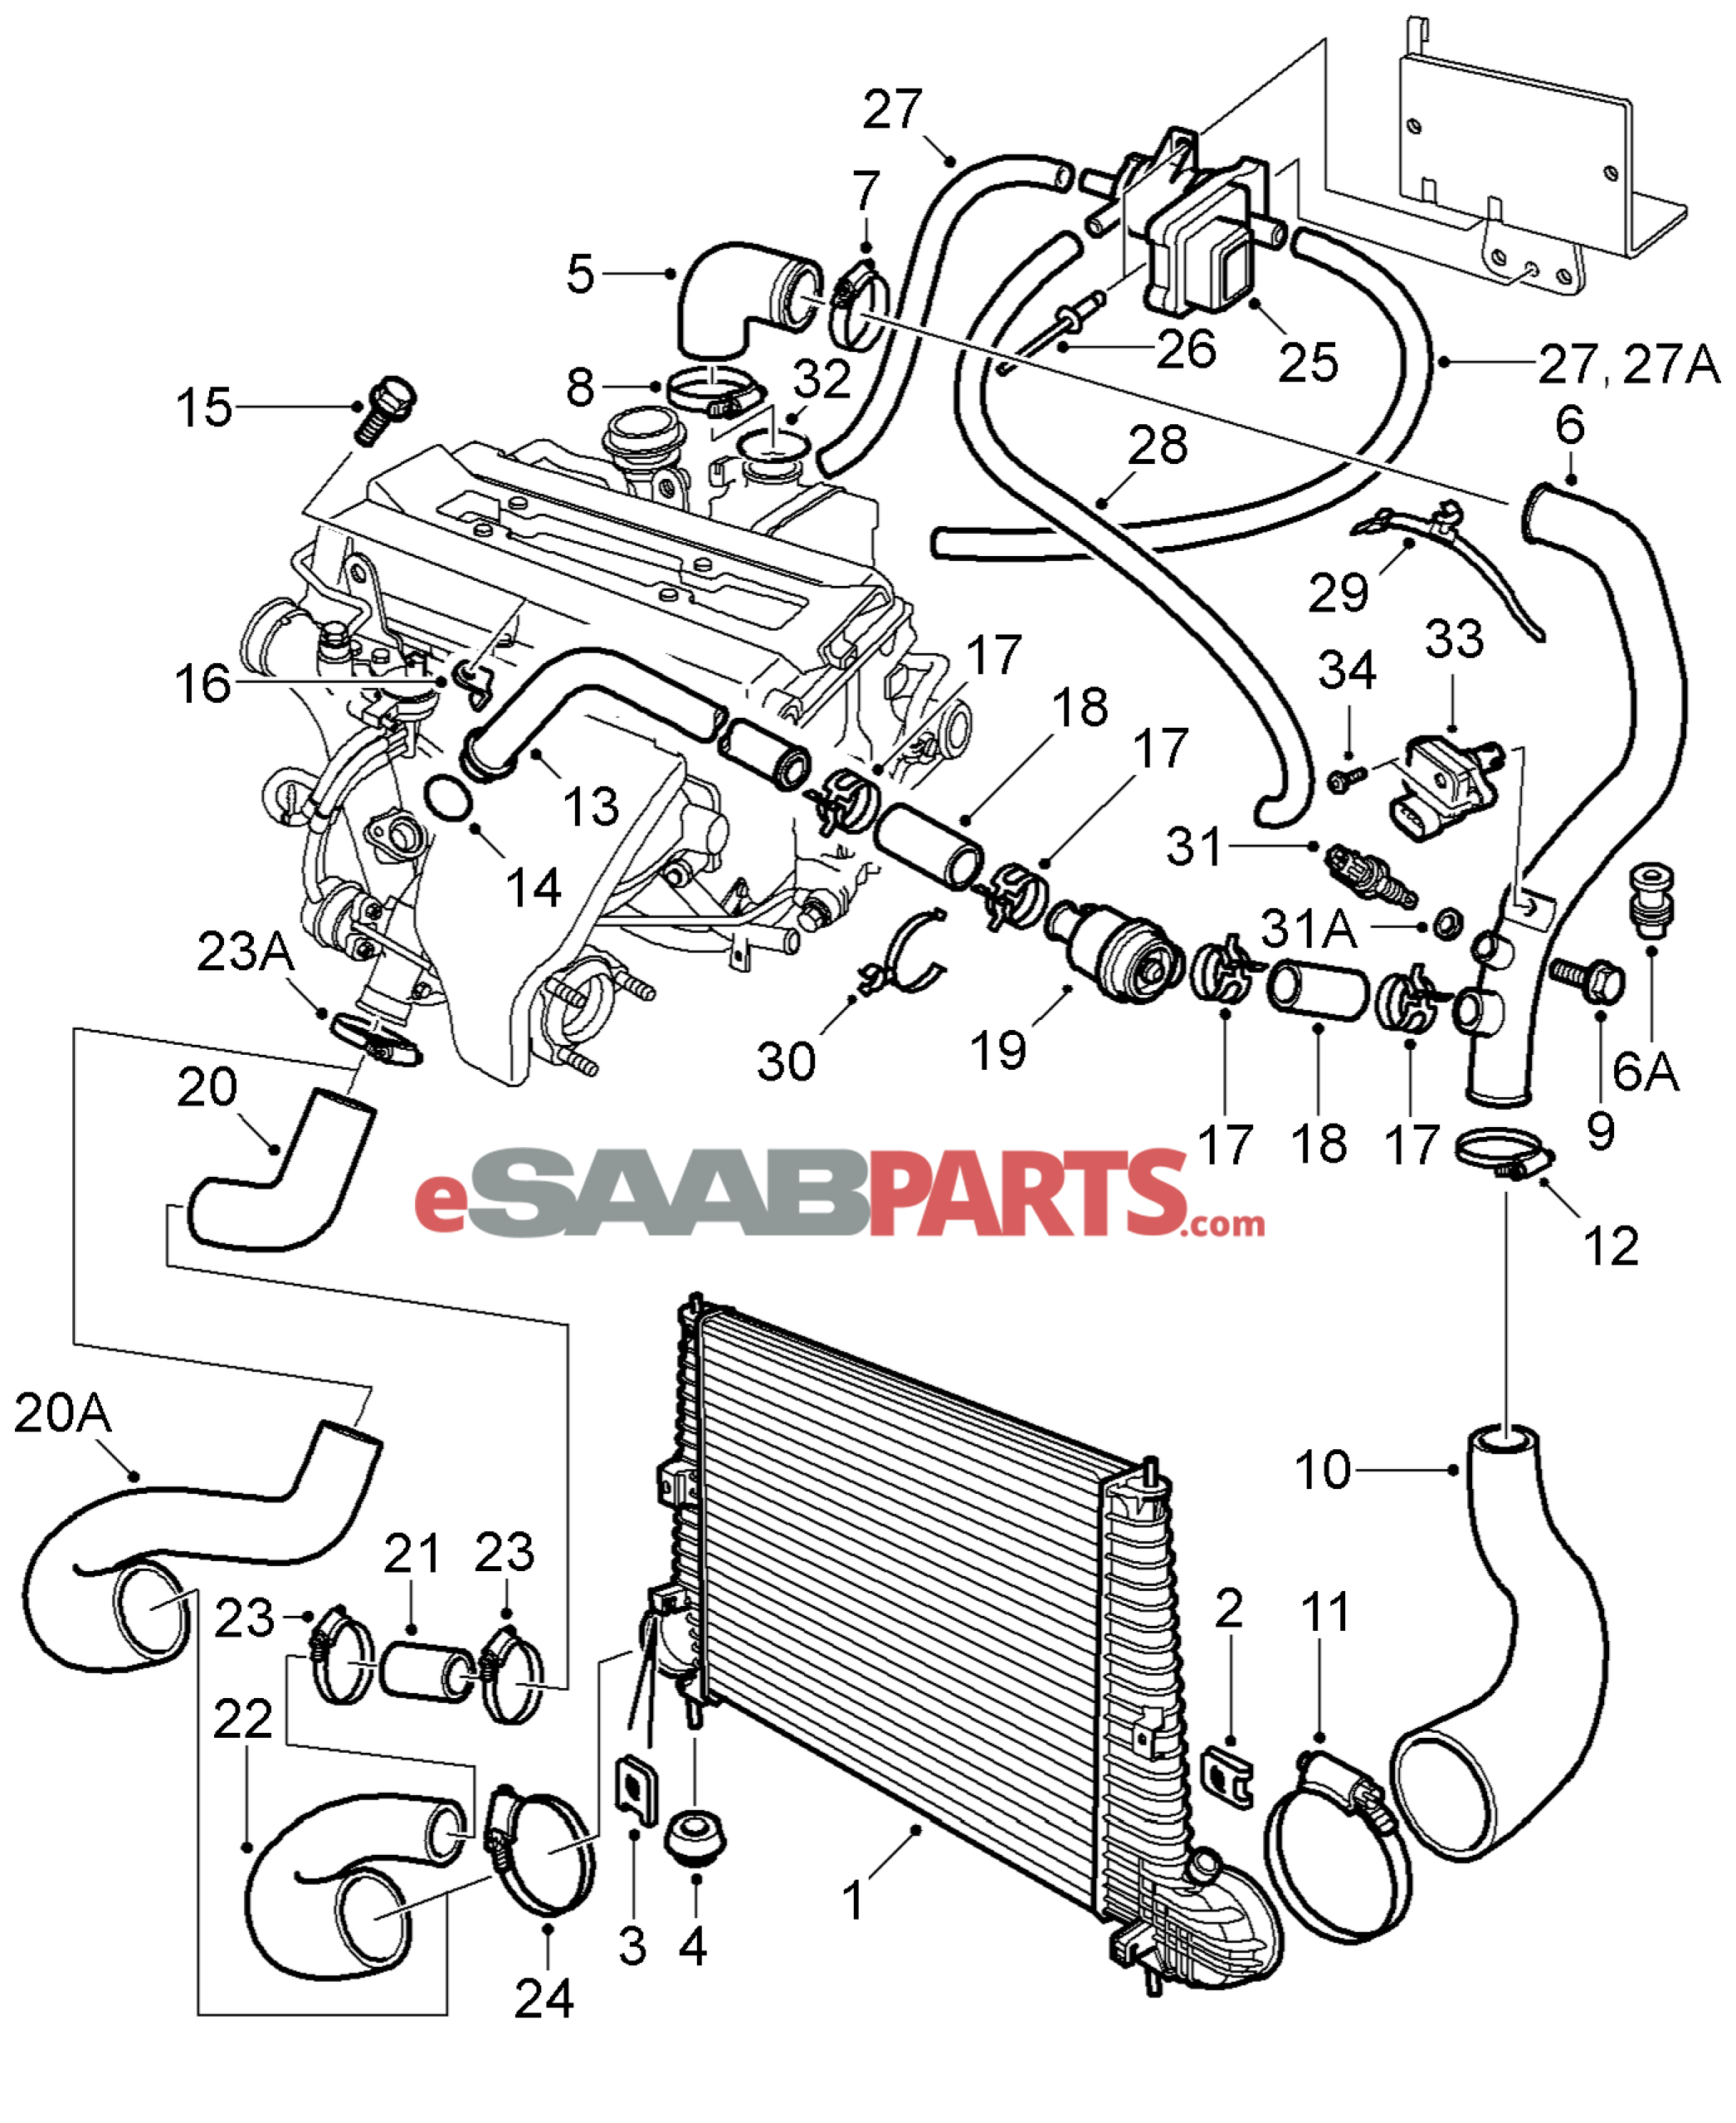 1985 Cadillac Eldorado Engine Diagram further 1999 Saab 9 3 Vacuum Line Diagram further P 0900c152800c2d5b as well 2005 Buick Rainier Front Suspension as well 2003 Mercury Grand Marquis Problems. on 2002 saab 9 3 vacuum line diagram